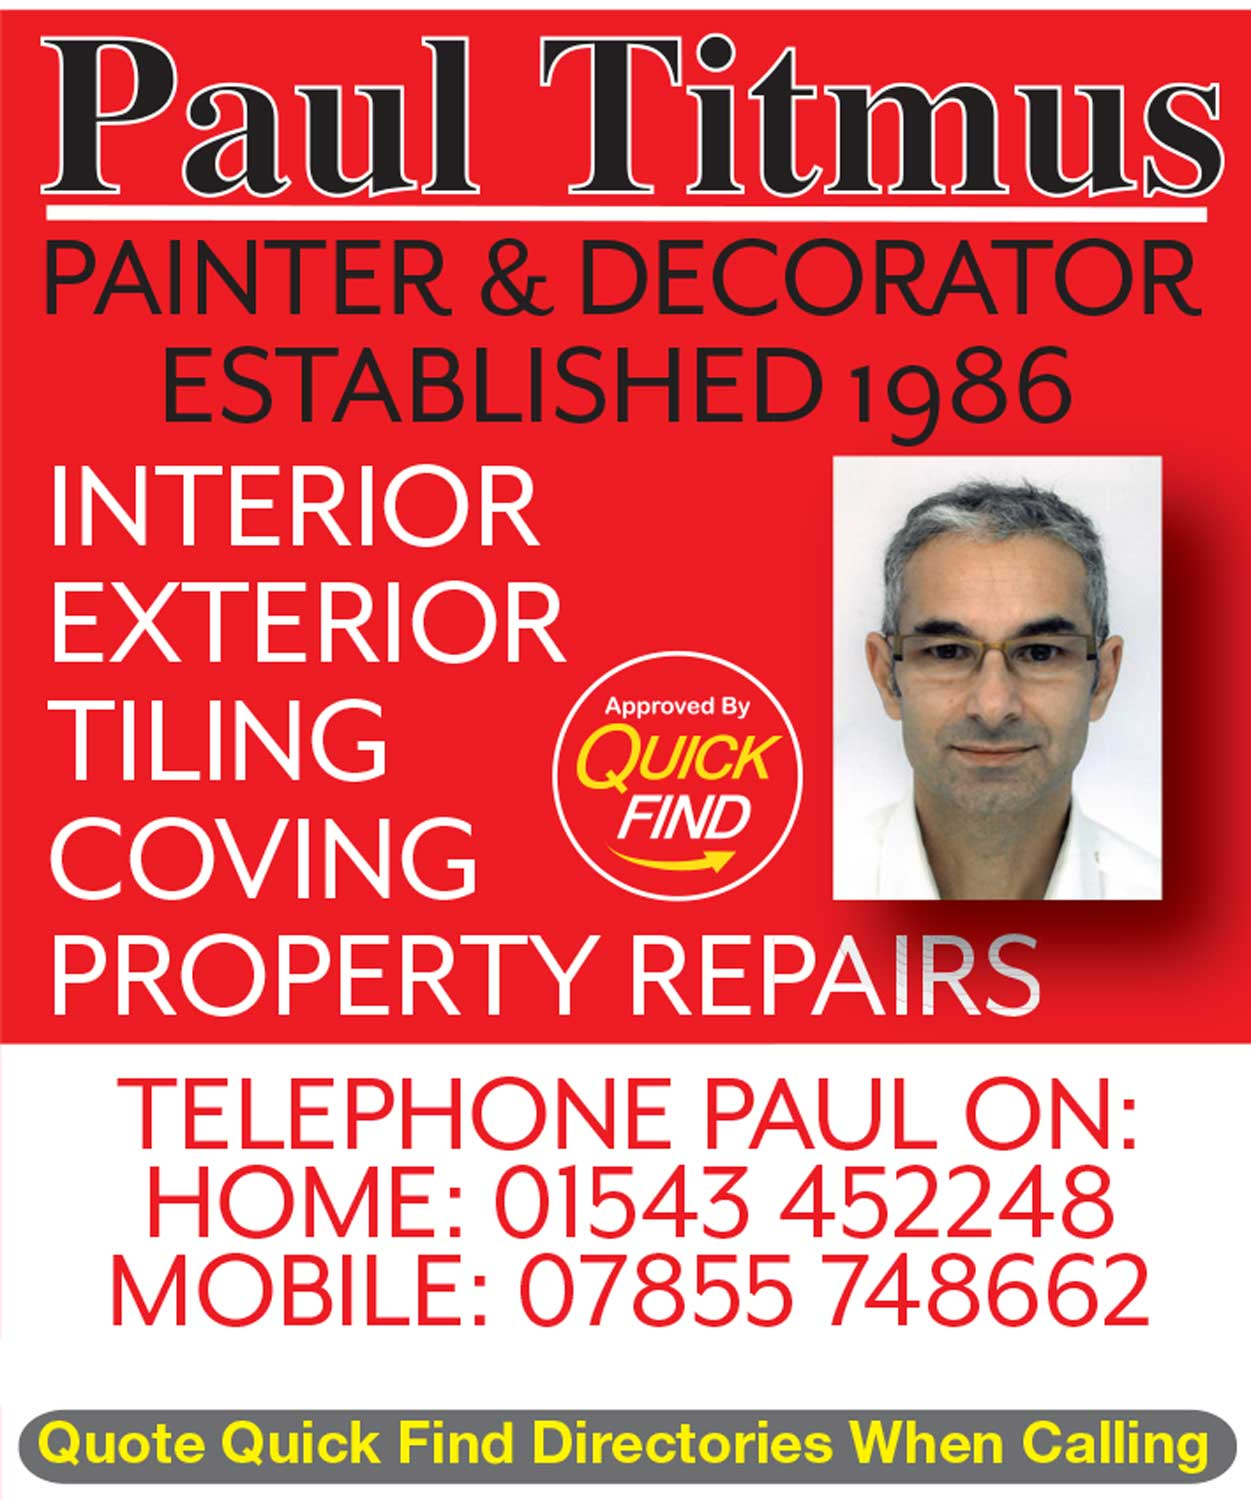 Paul Titmus Painter & Decorator